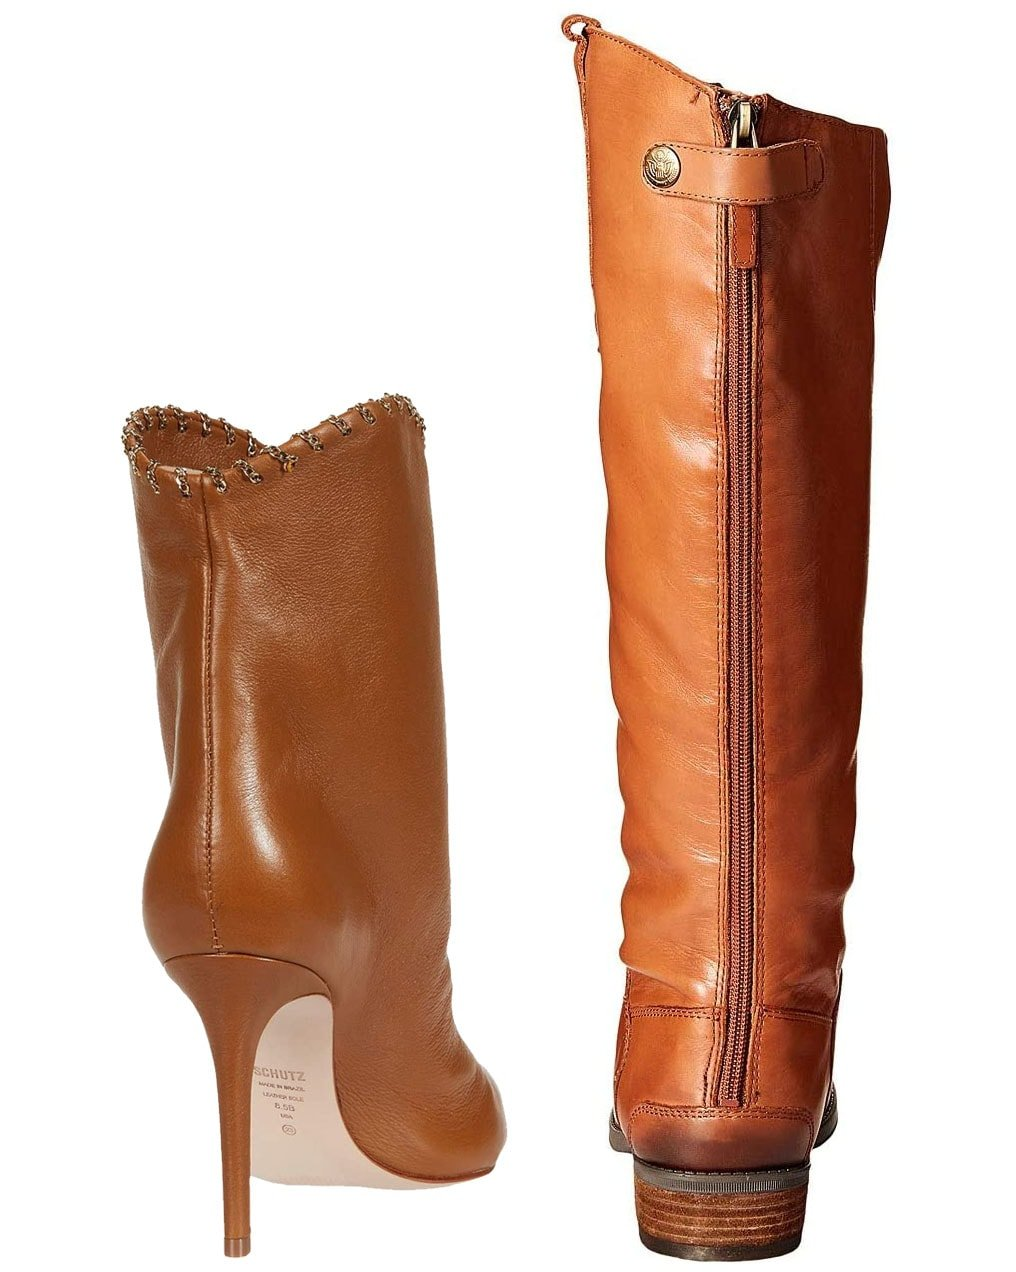 Regular boots (left) can incorporate stiletto heels, while riding boots (right) can only have less than two inches of stacked or blocked heels